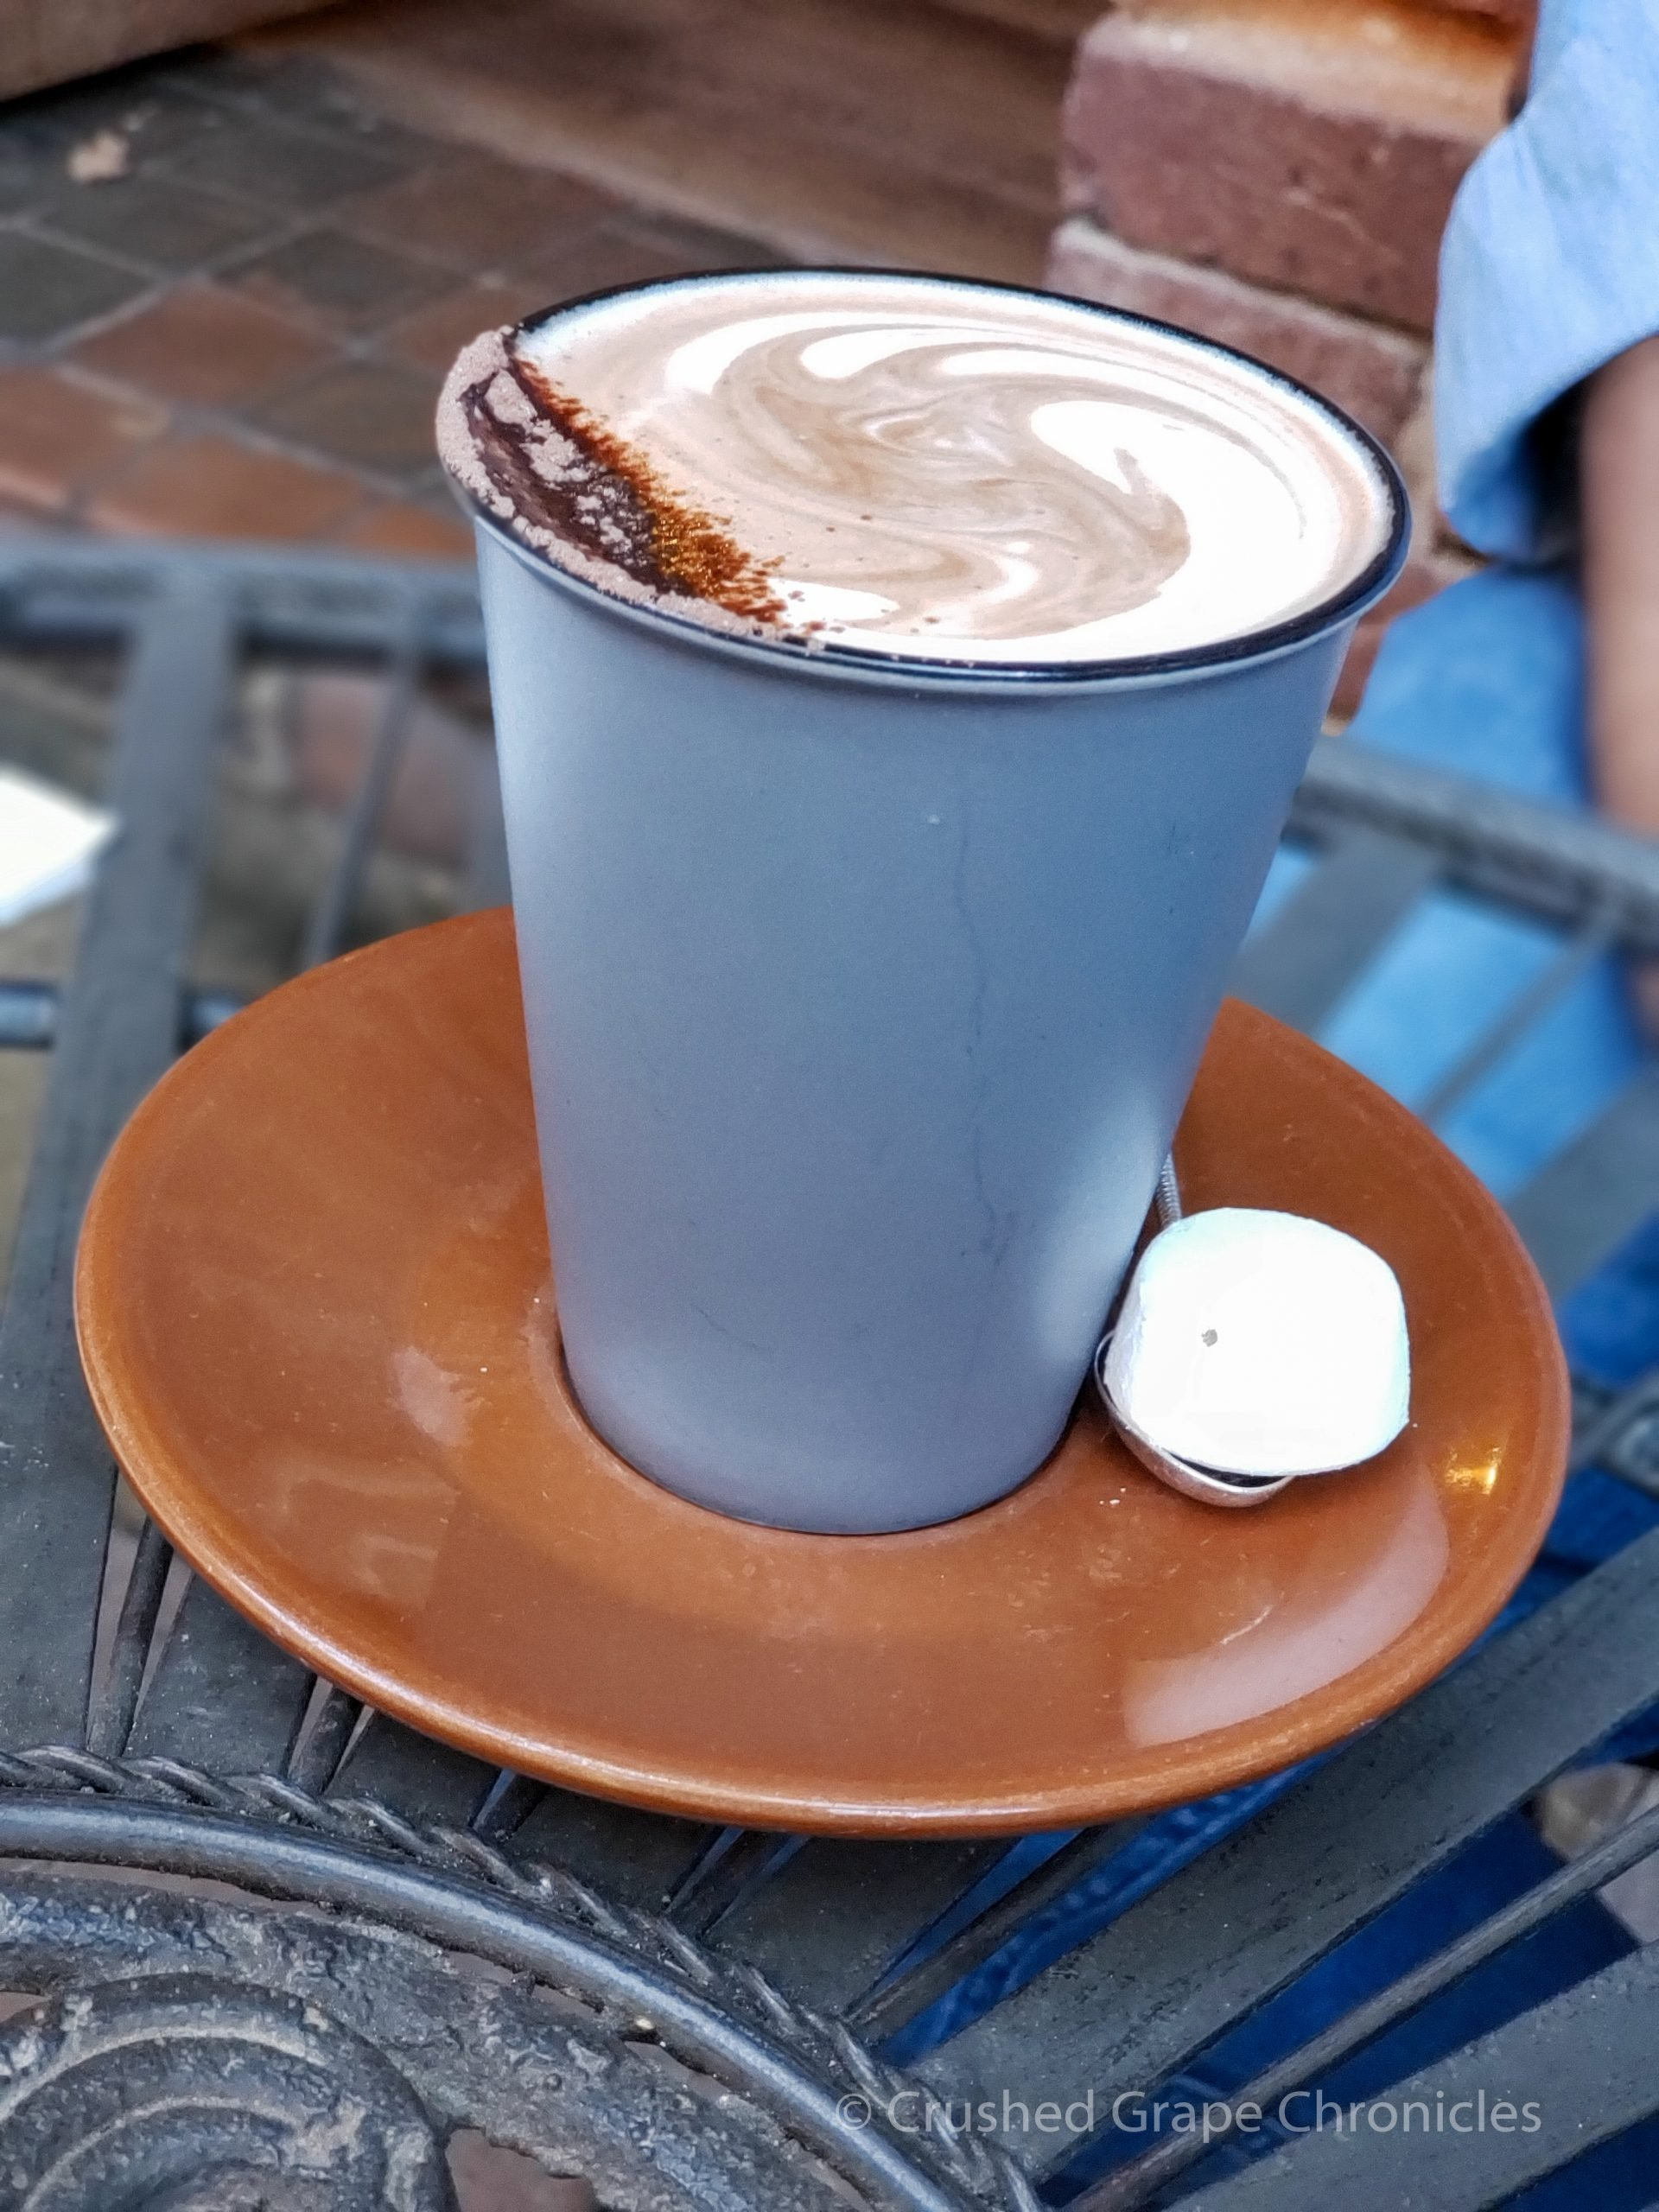 Cocoa at Alby + Esther's Mudgee NSW Australia